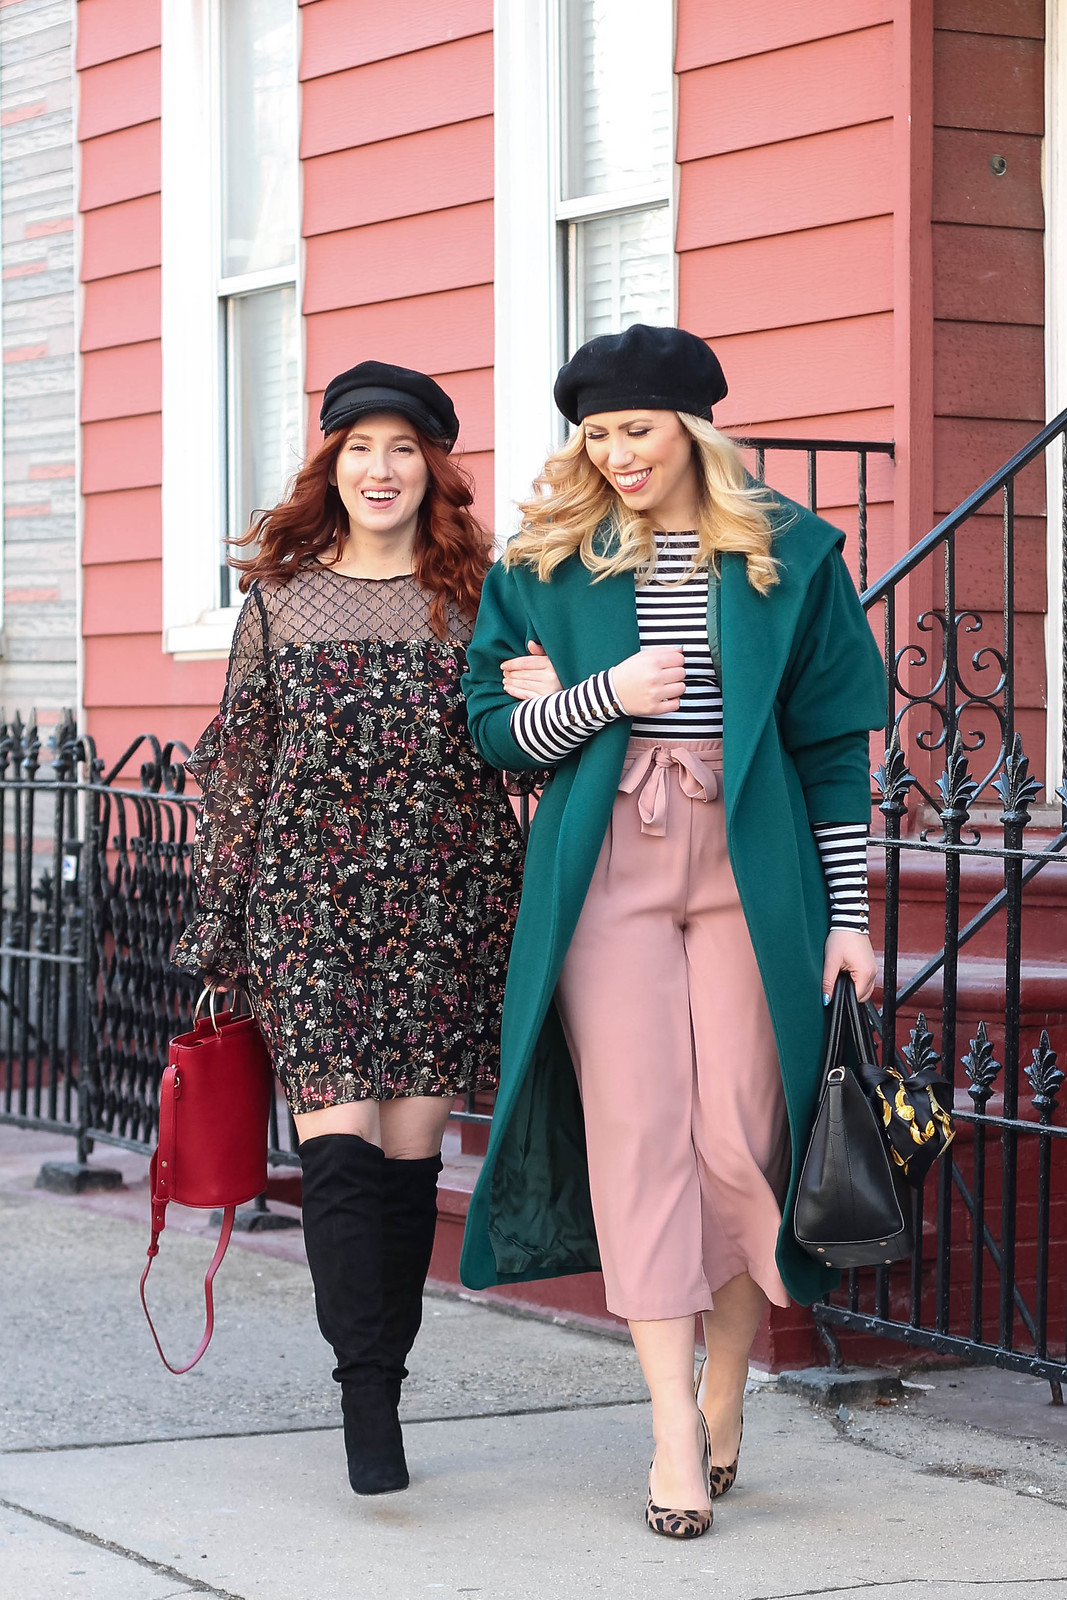 Vintage New York Winter Style Baker Boy Hat Floral Dress Outfit Black Beret Emerald Coat Striped Shirt Pink Culottes Look What's Old is New Again! These Trends are BACK!